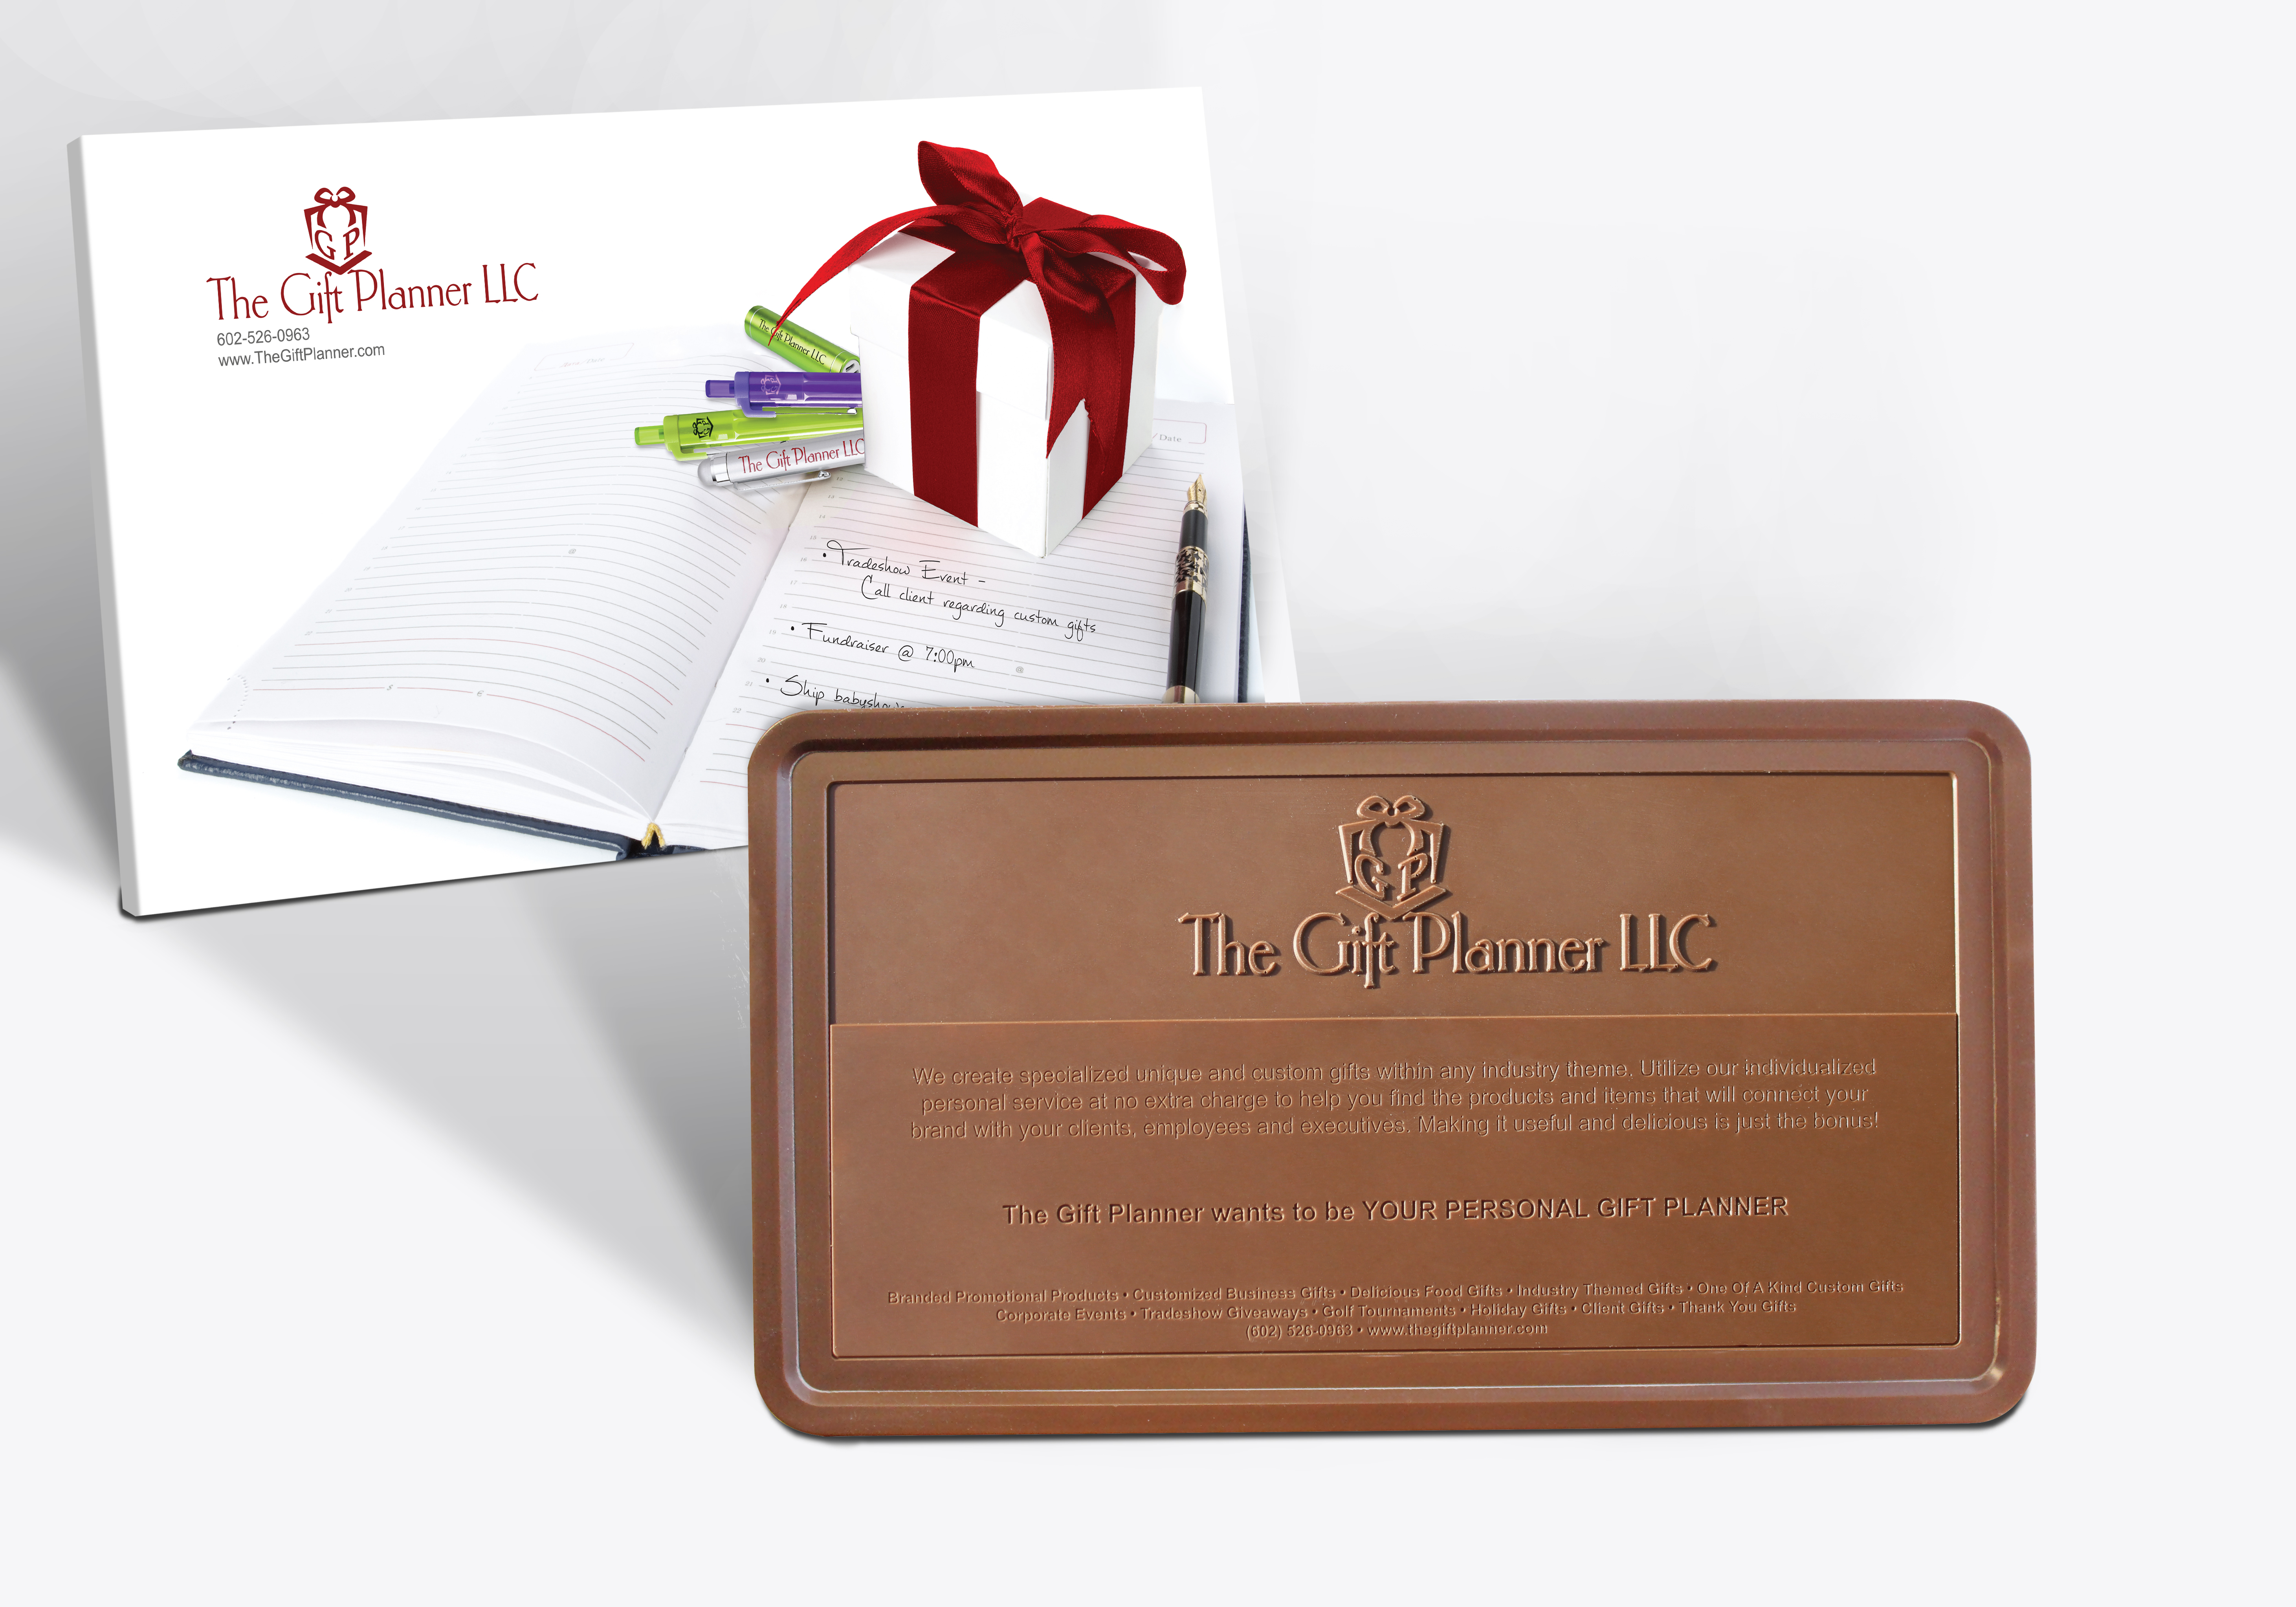 The Gift Planner Has Unique One Of A Kind Personalized Corporate ...